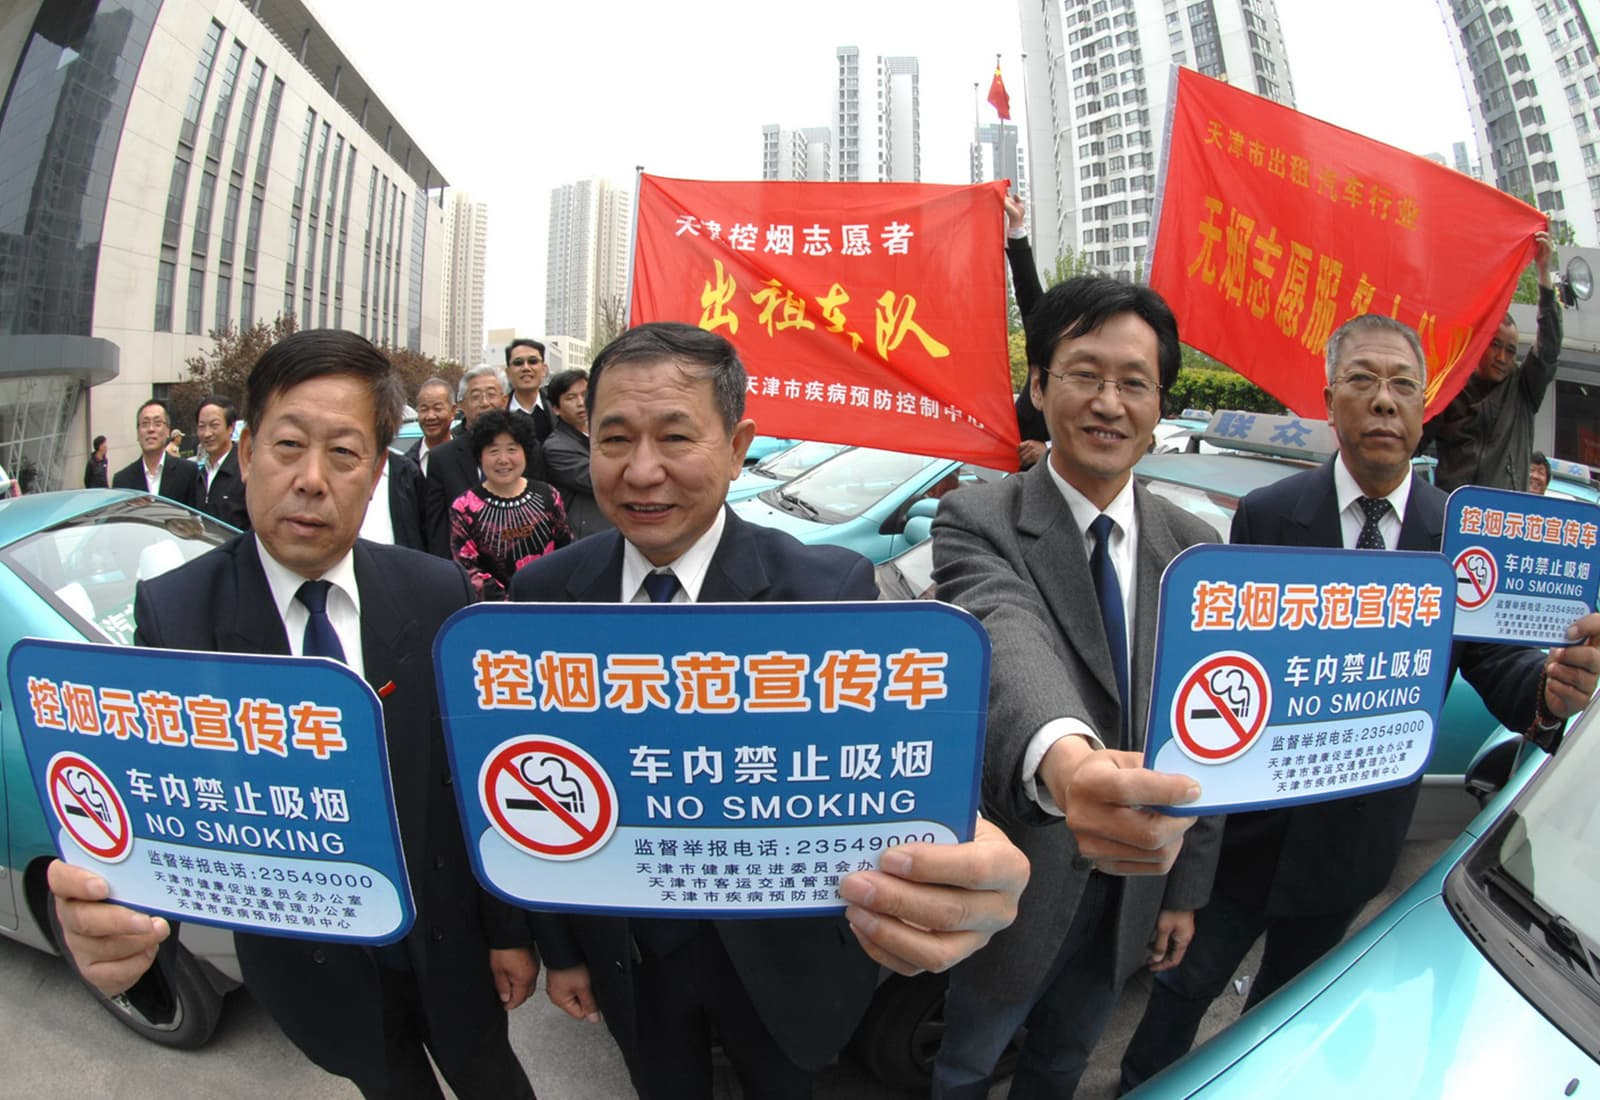 In China, taxi drivers proudly display their no smoking signs.